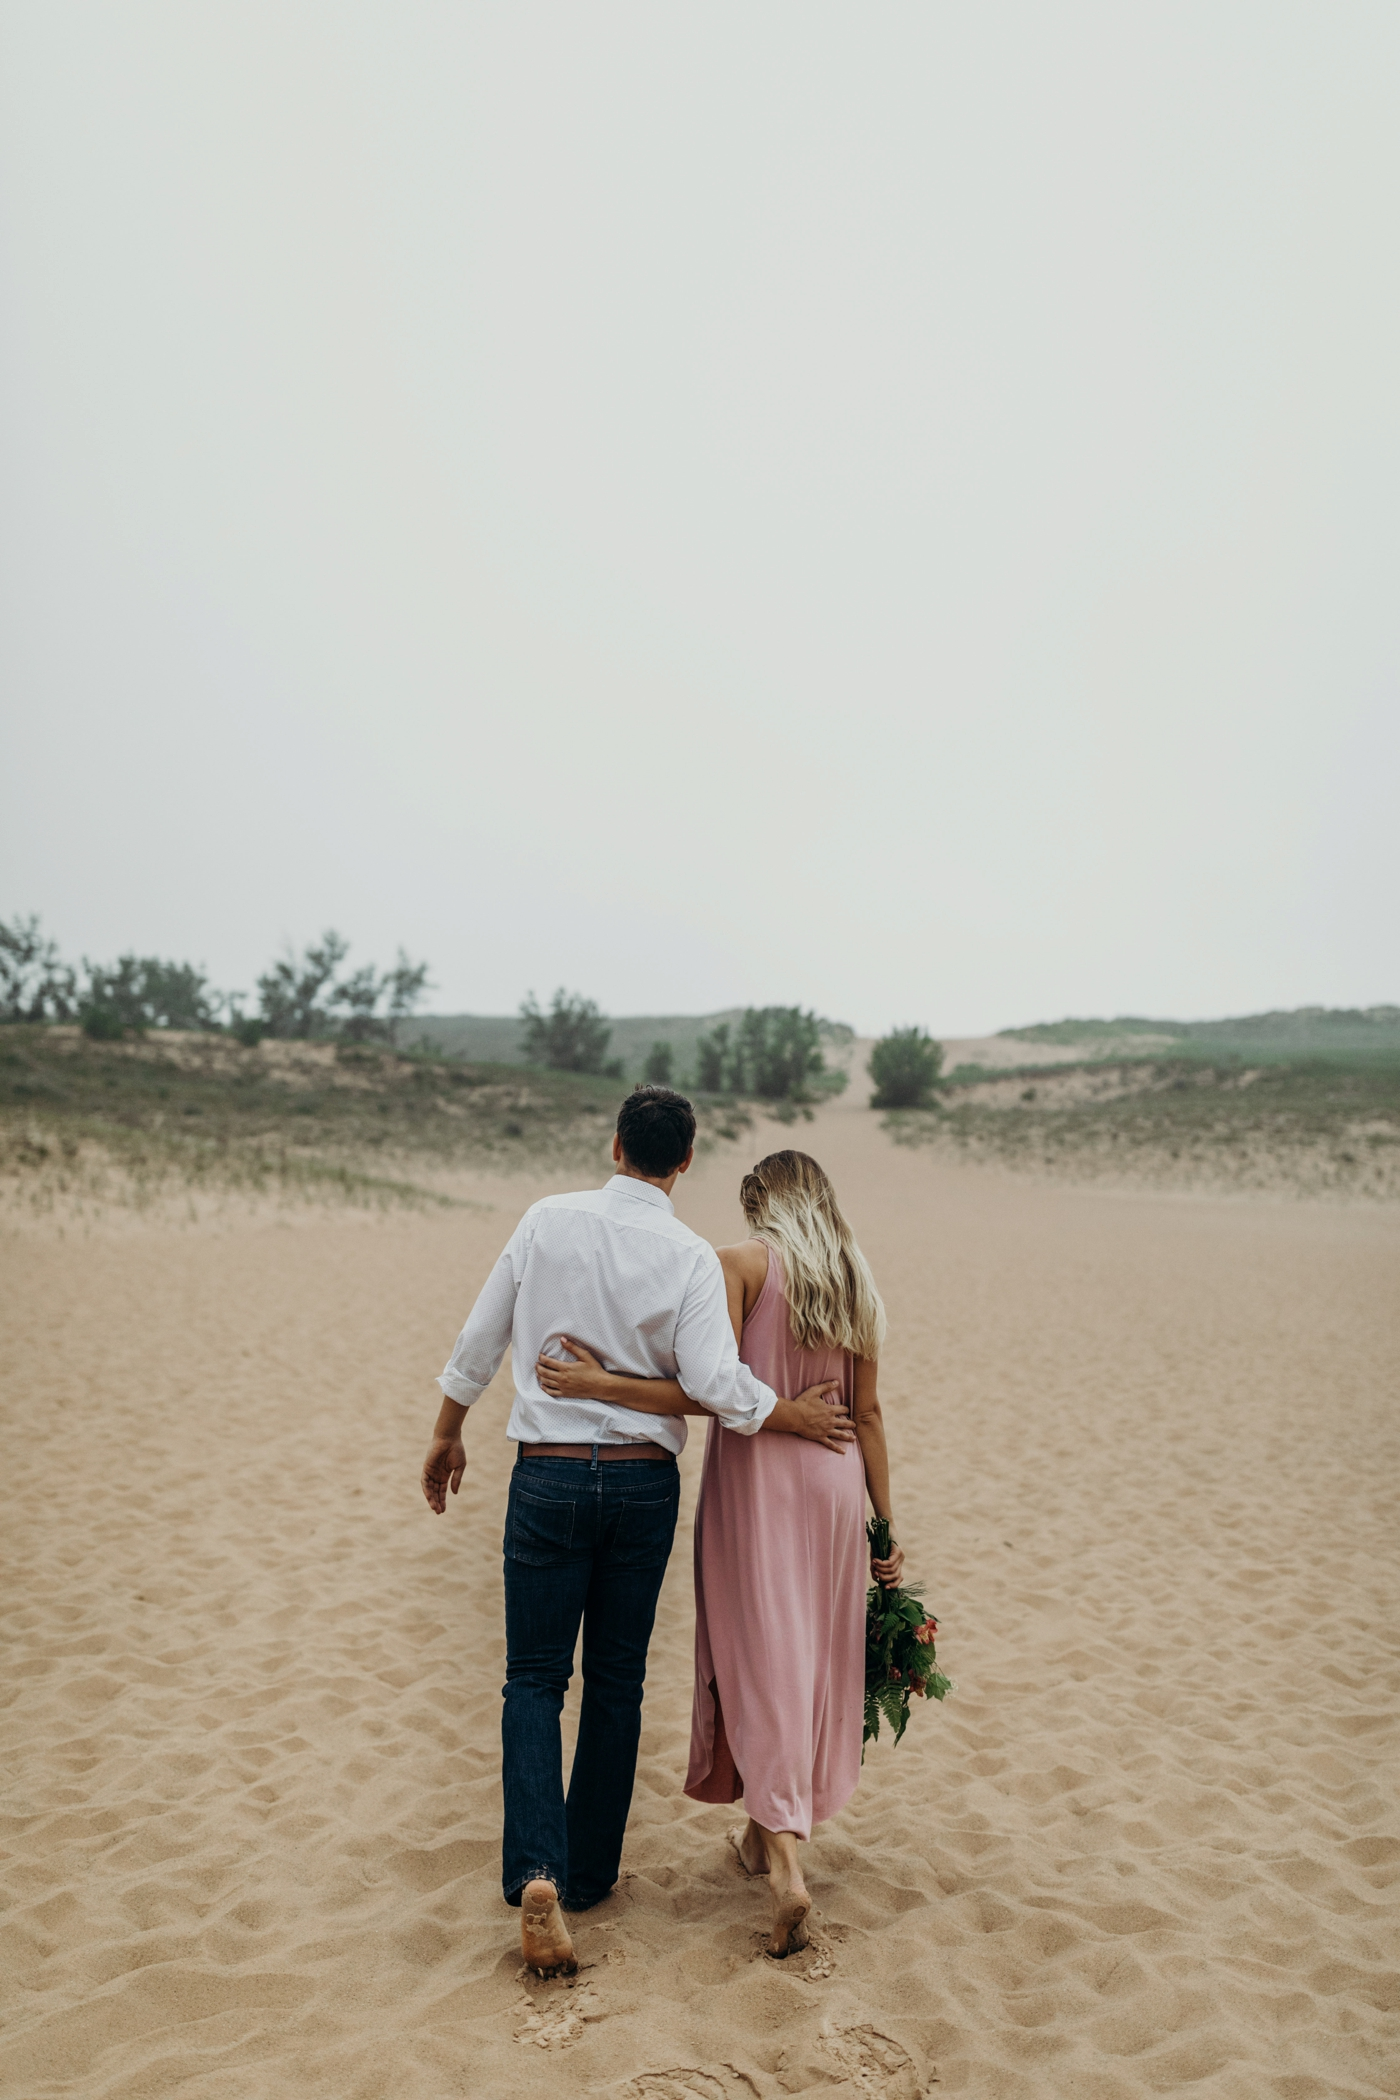 Sleeping_Bear_Dunes_Couples_Adventure_Session_Adventure_Wedding_Photographer_Hiking_with_Heels_Brett+Emily-11.jpg